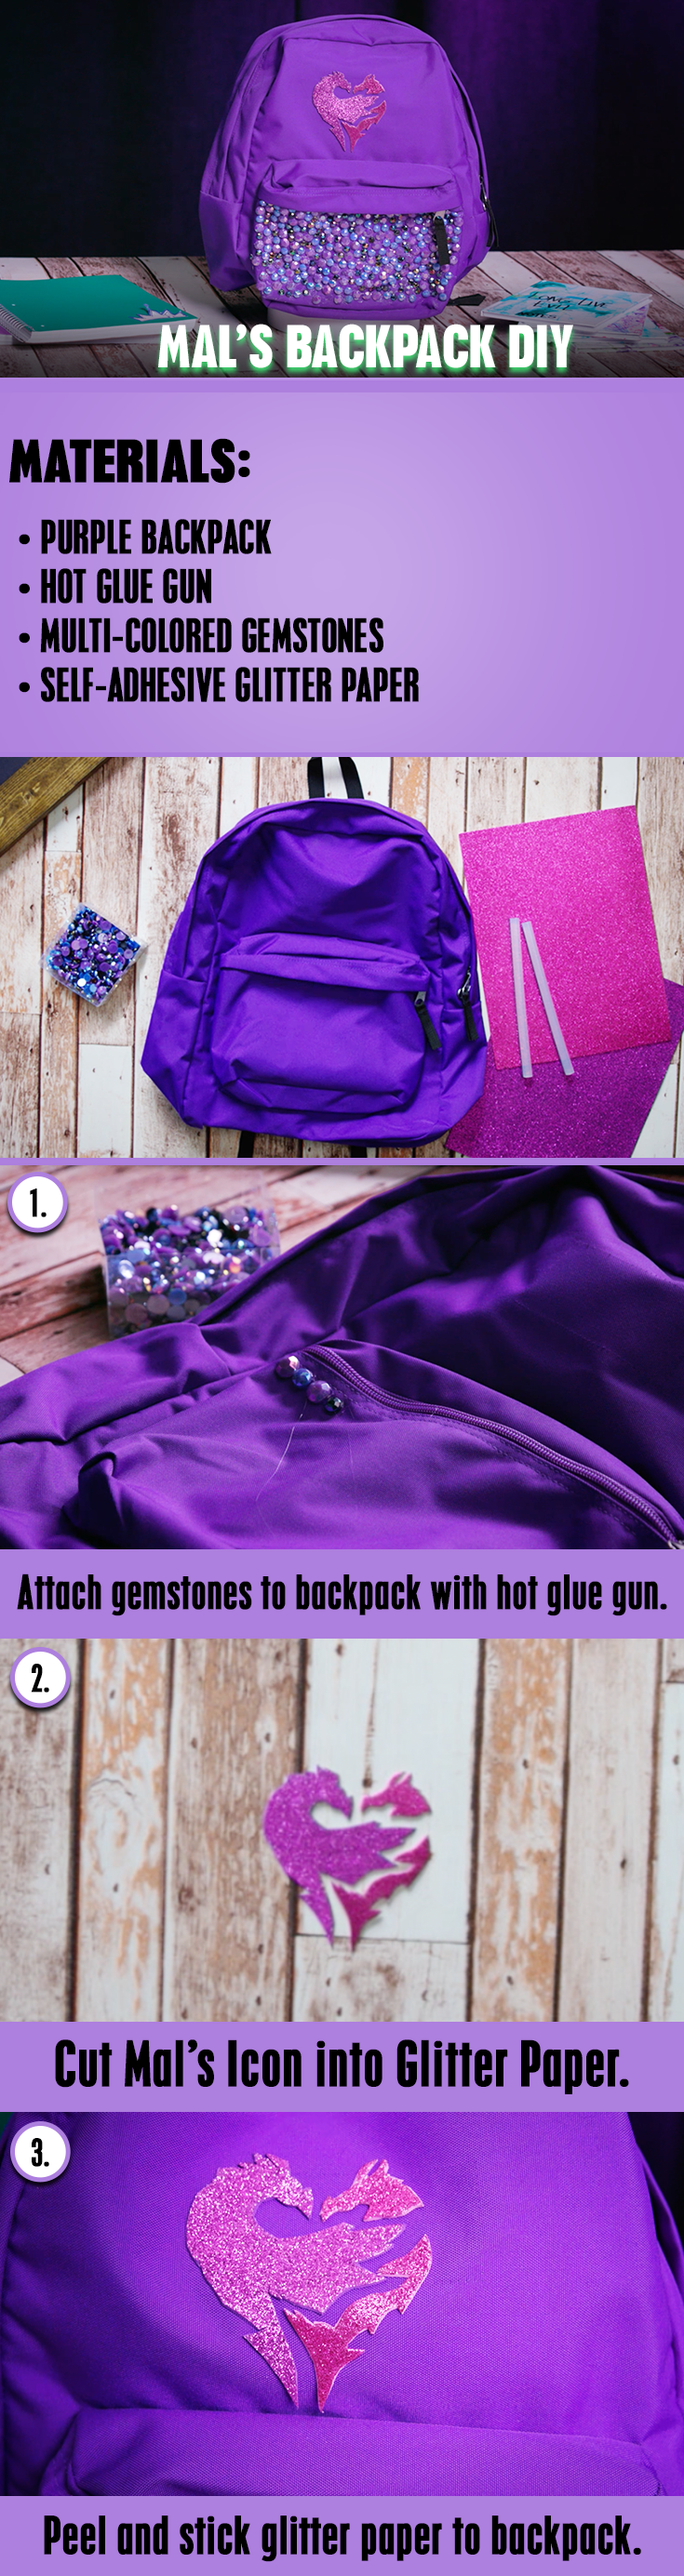 Descendants 2 Mal S Backpack Diy Get Ready For Back To School By Creating Your Own Mal Inspired Backpack Diy Backpack Descendants Fabric Embellishment